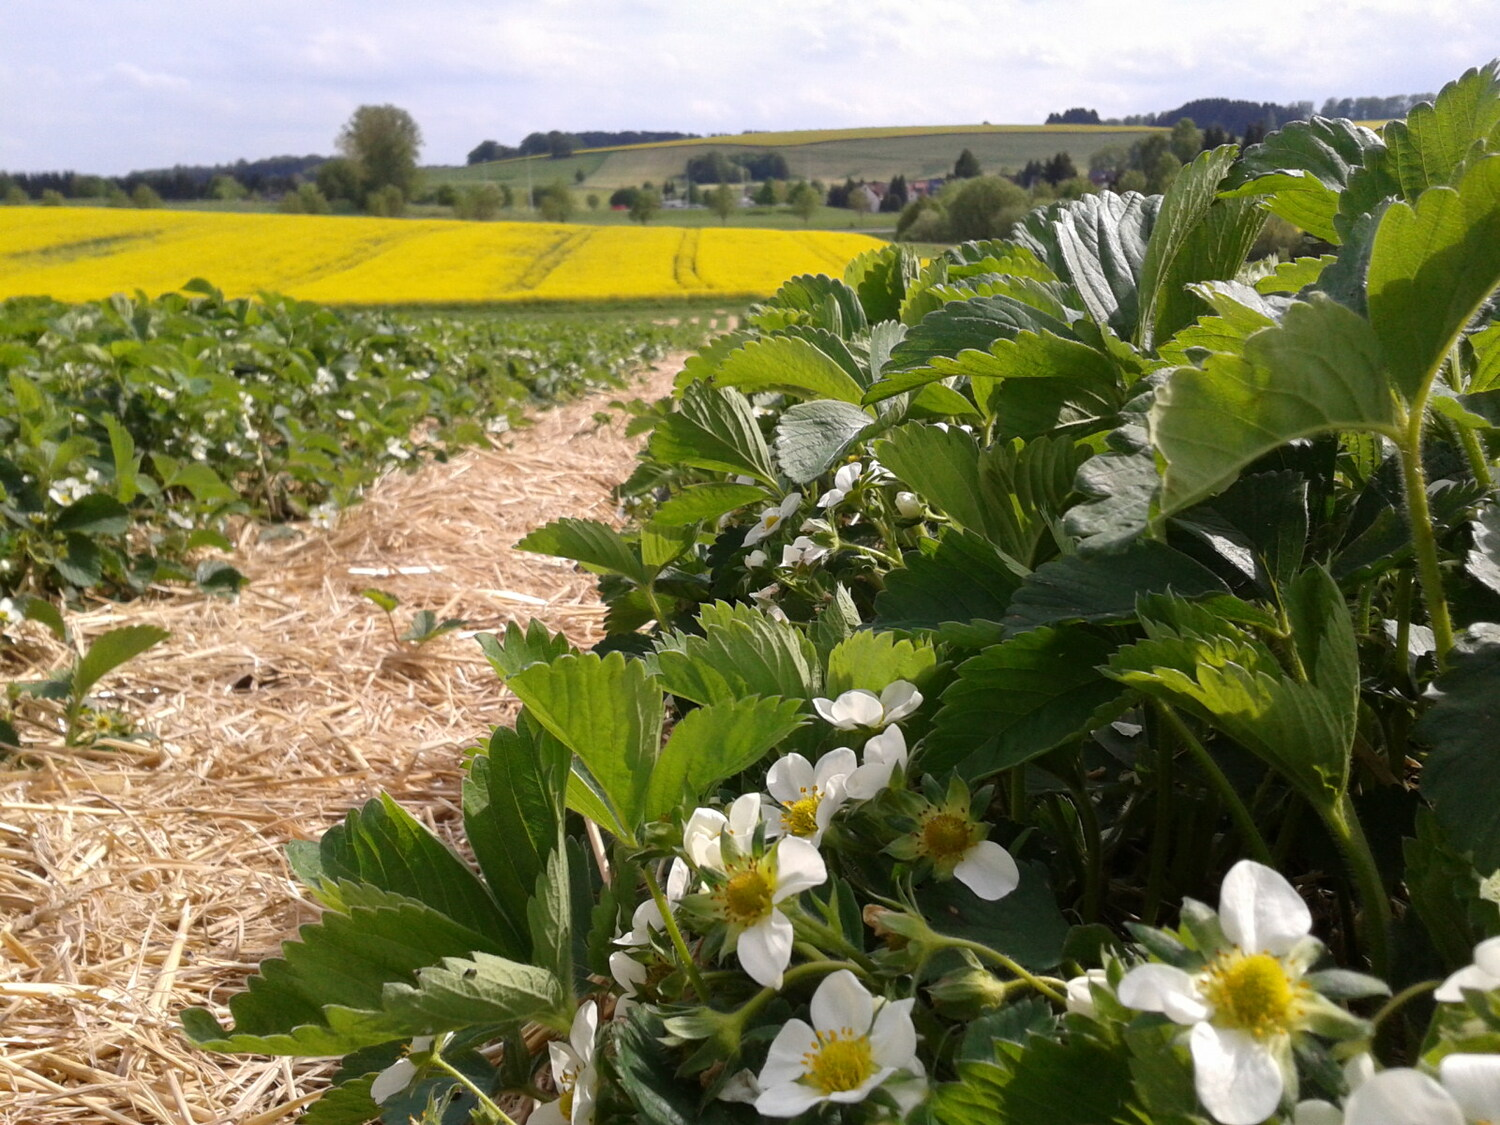 When fields of strawberries are next to oilseed rape, honey bees prefer the strawberry field.